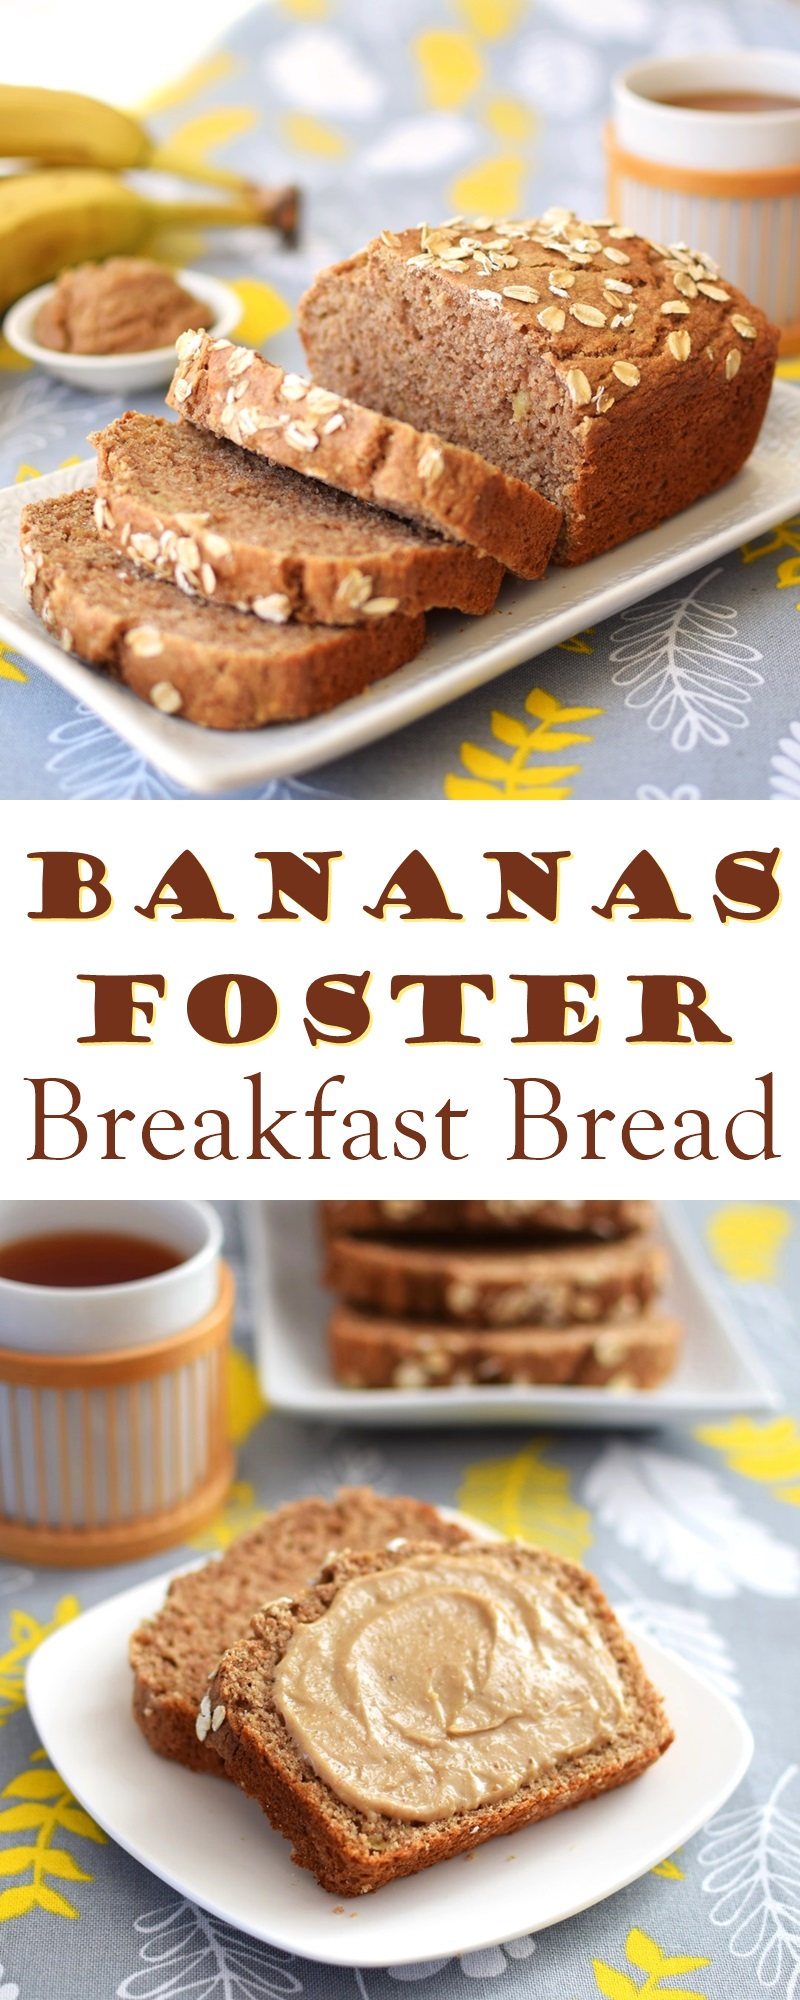 Bananas Foster Breakfast Bread - Better for you, vegan, plant-based, dairy-free, egg-free and whole grain recipe!